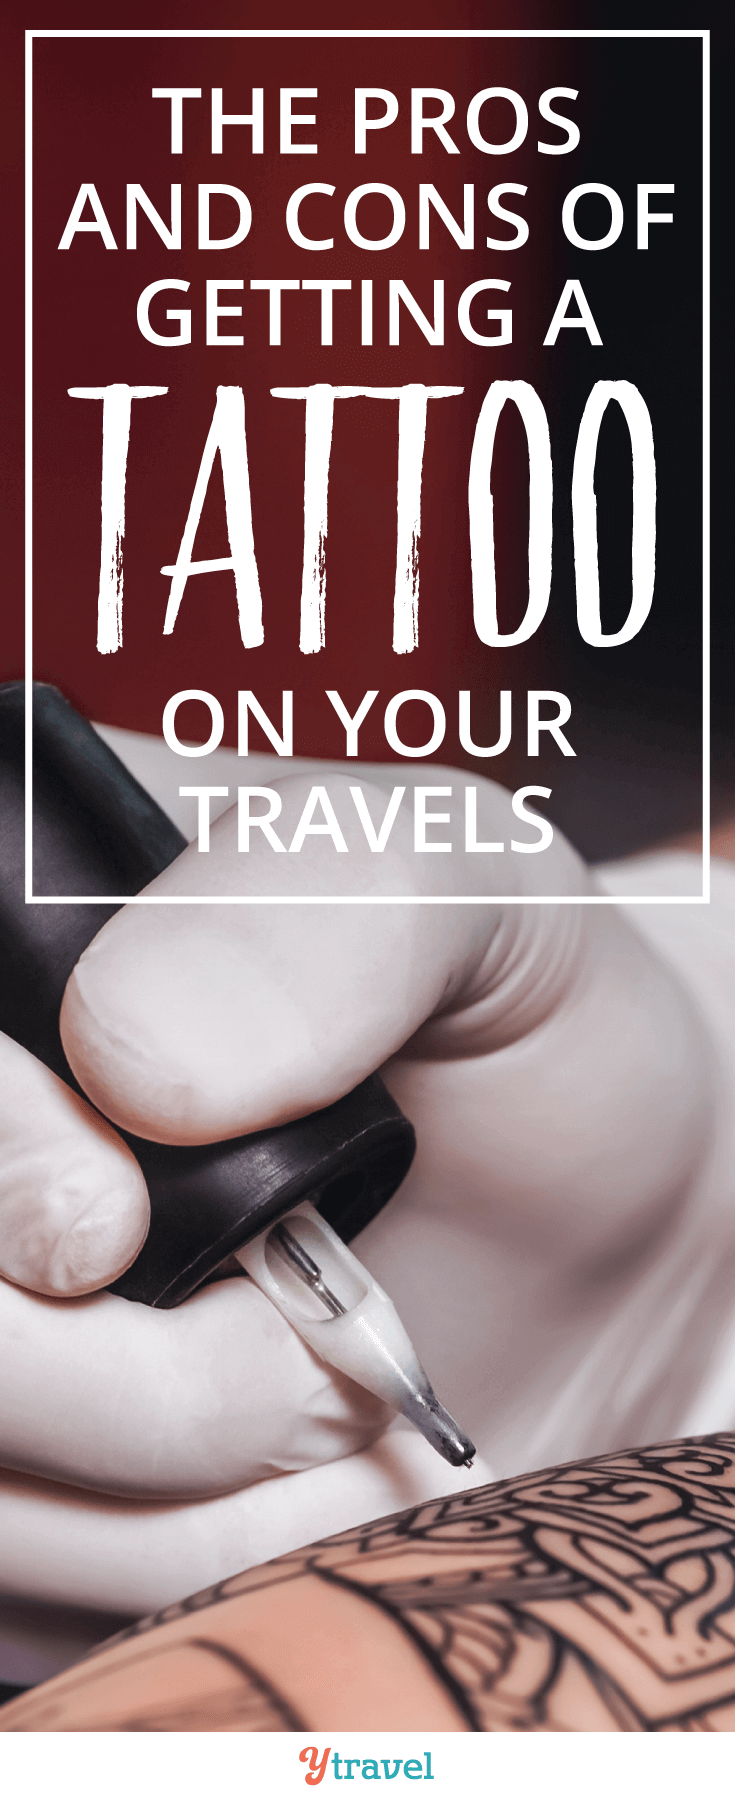 Have you ever thought about getting a tattoo on vacation? Check out the pros and cons of getting a tattoo on your travels.